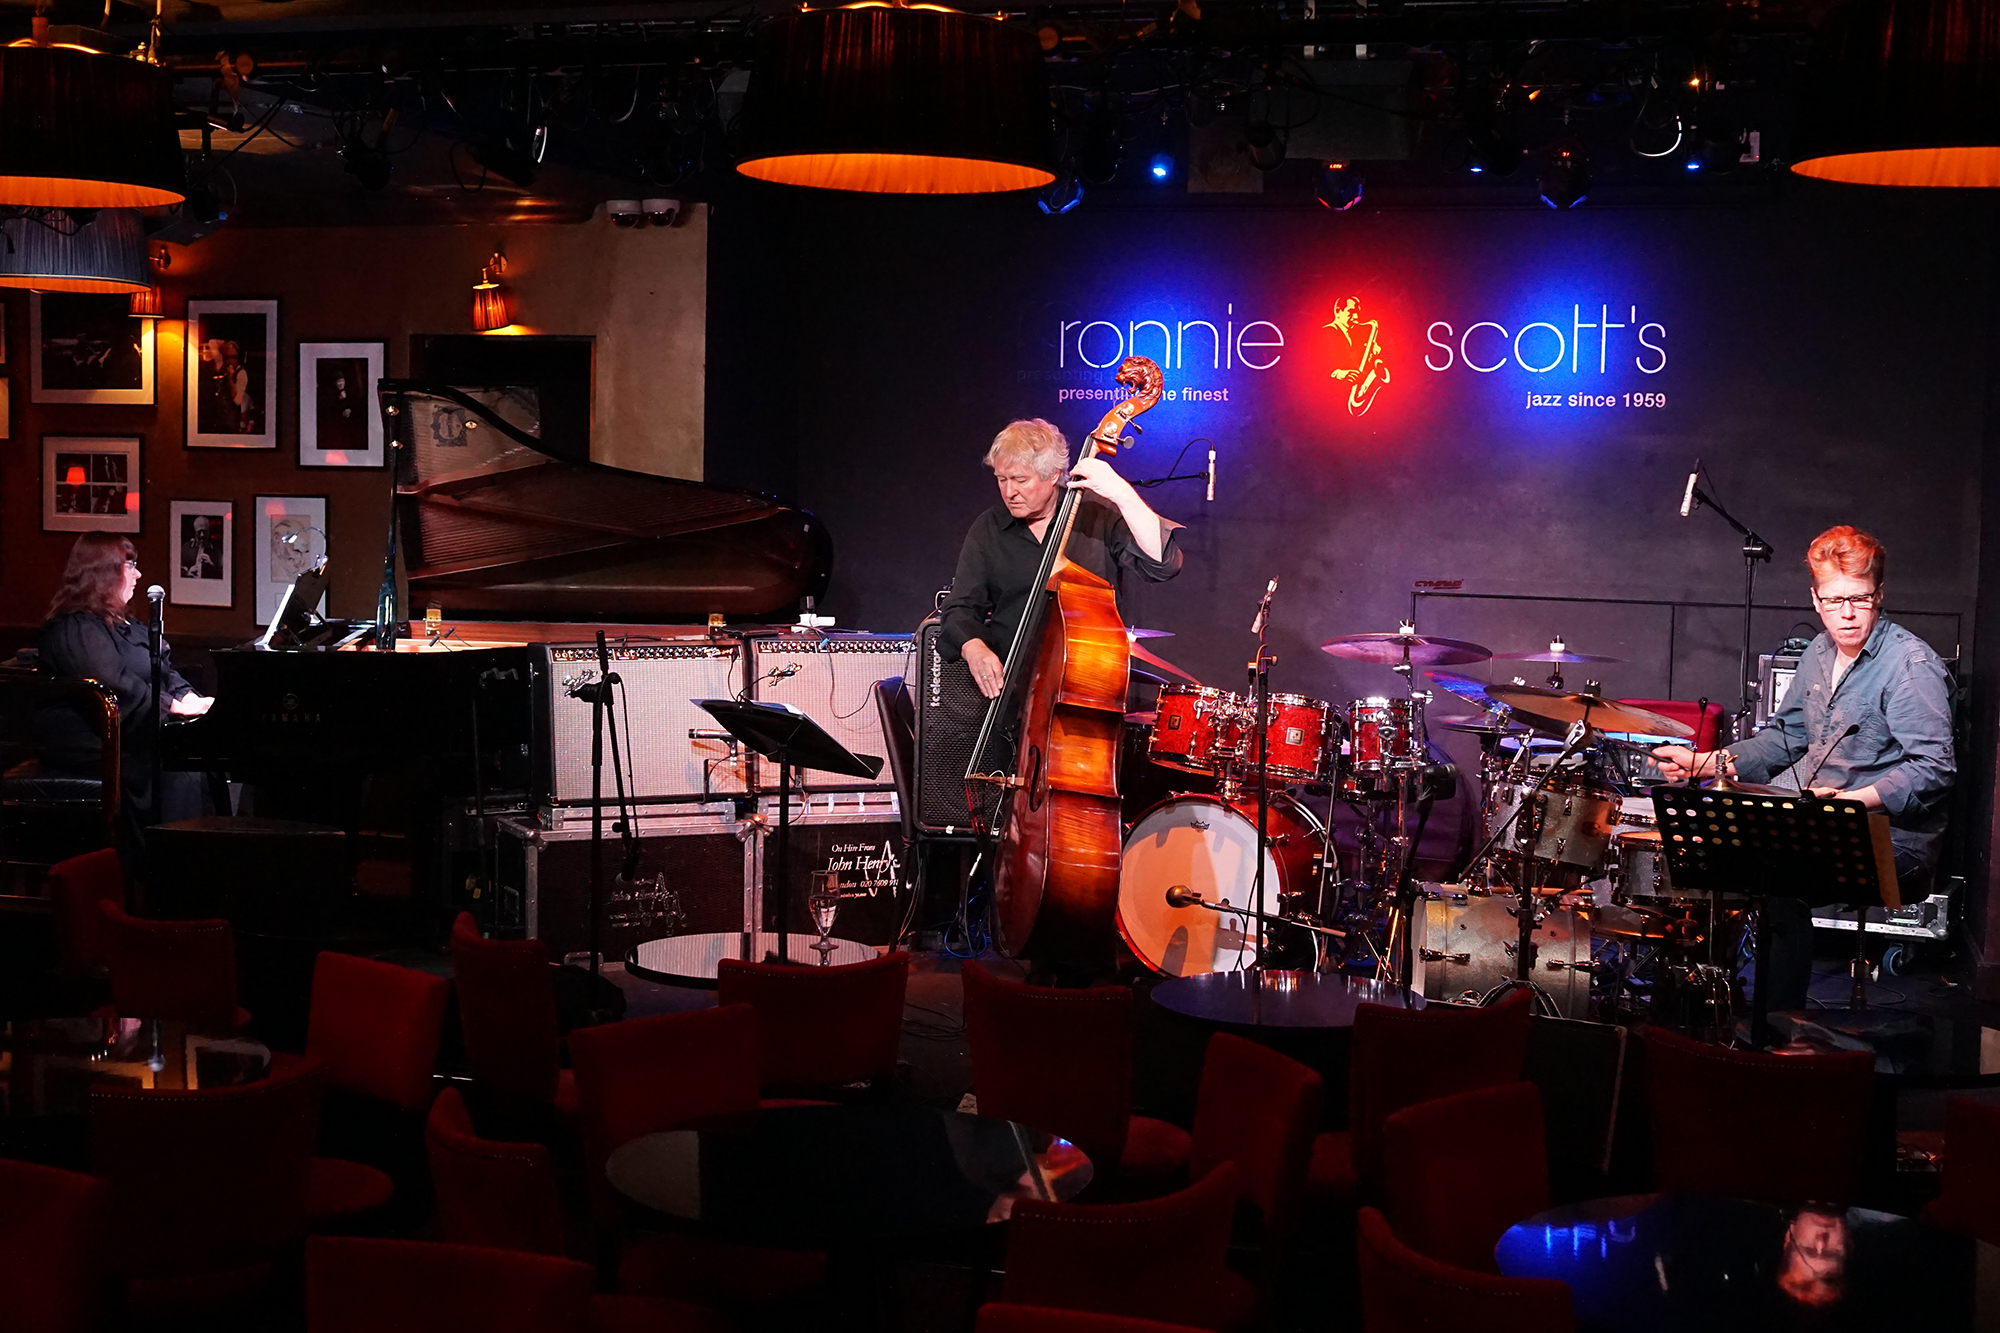 Performing at Ronnie Scott's